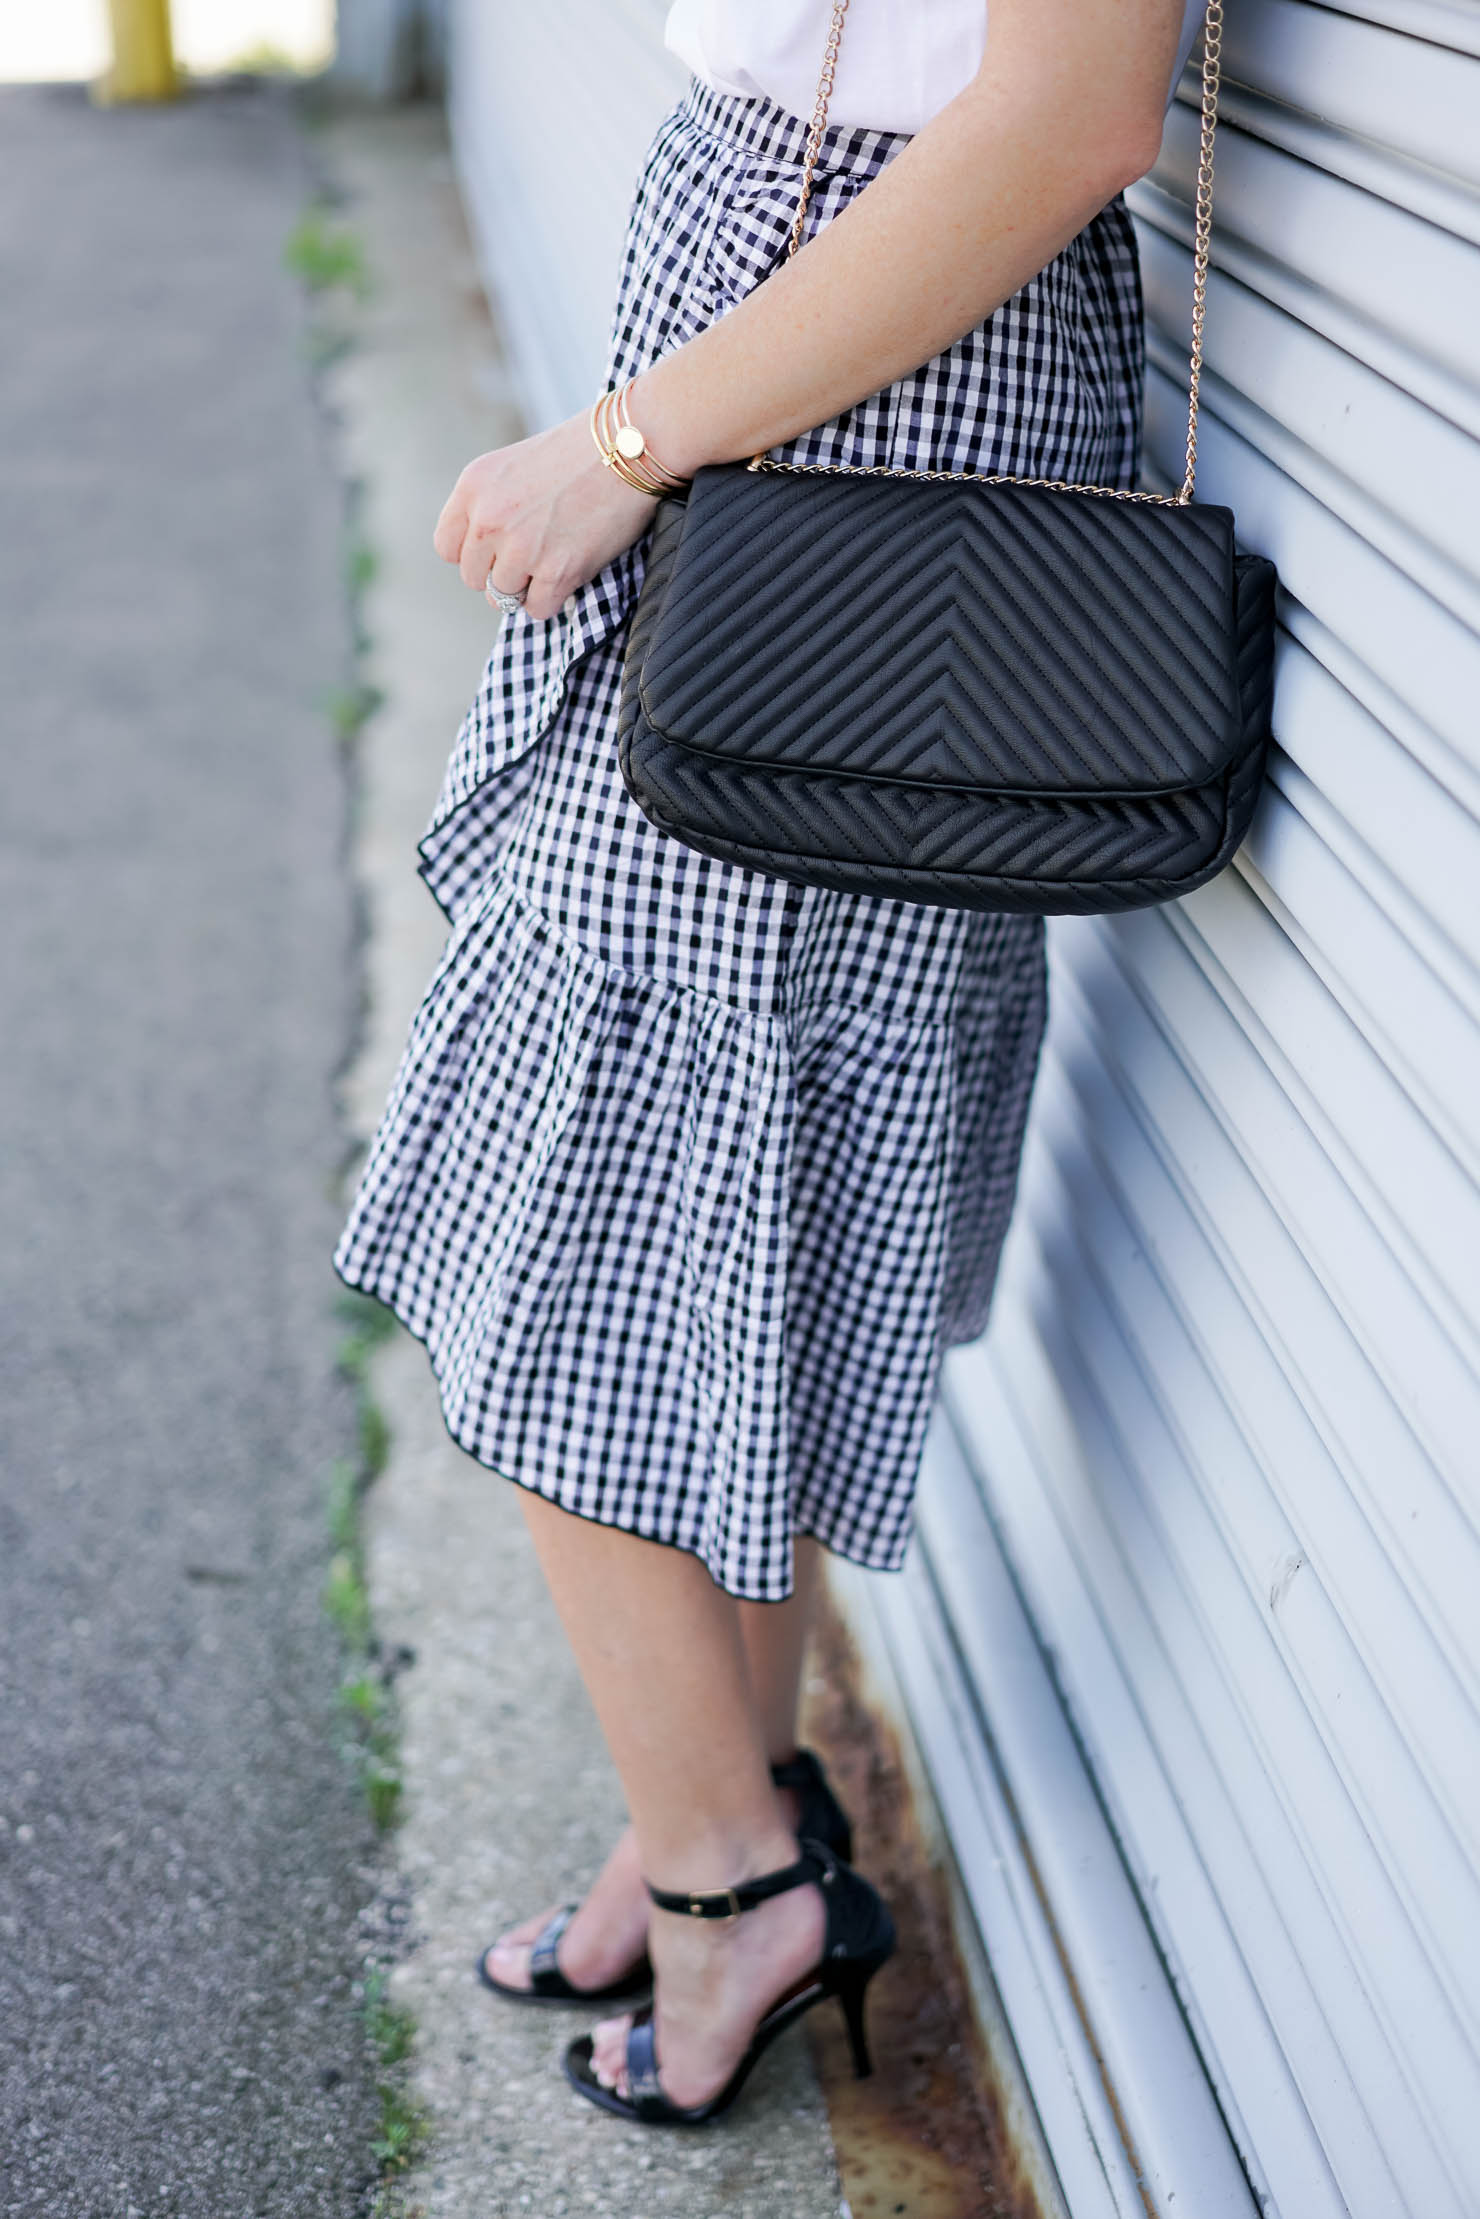 La Femme Parisian Chic In Gingham Ruffles Wishes Amp Reality